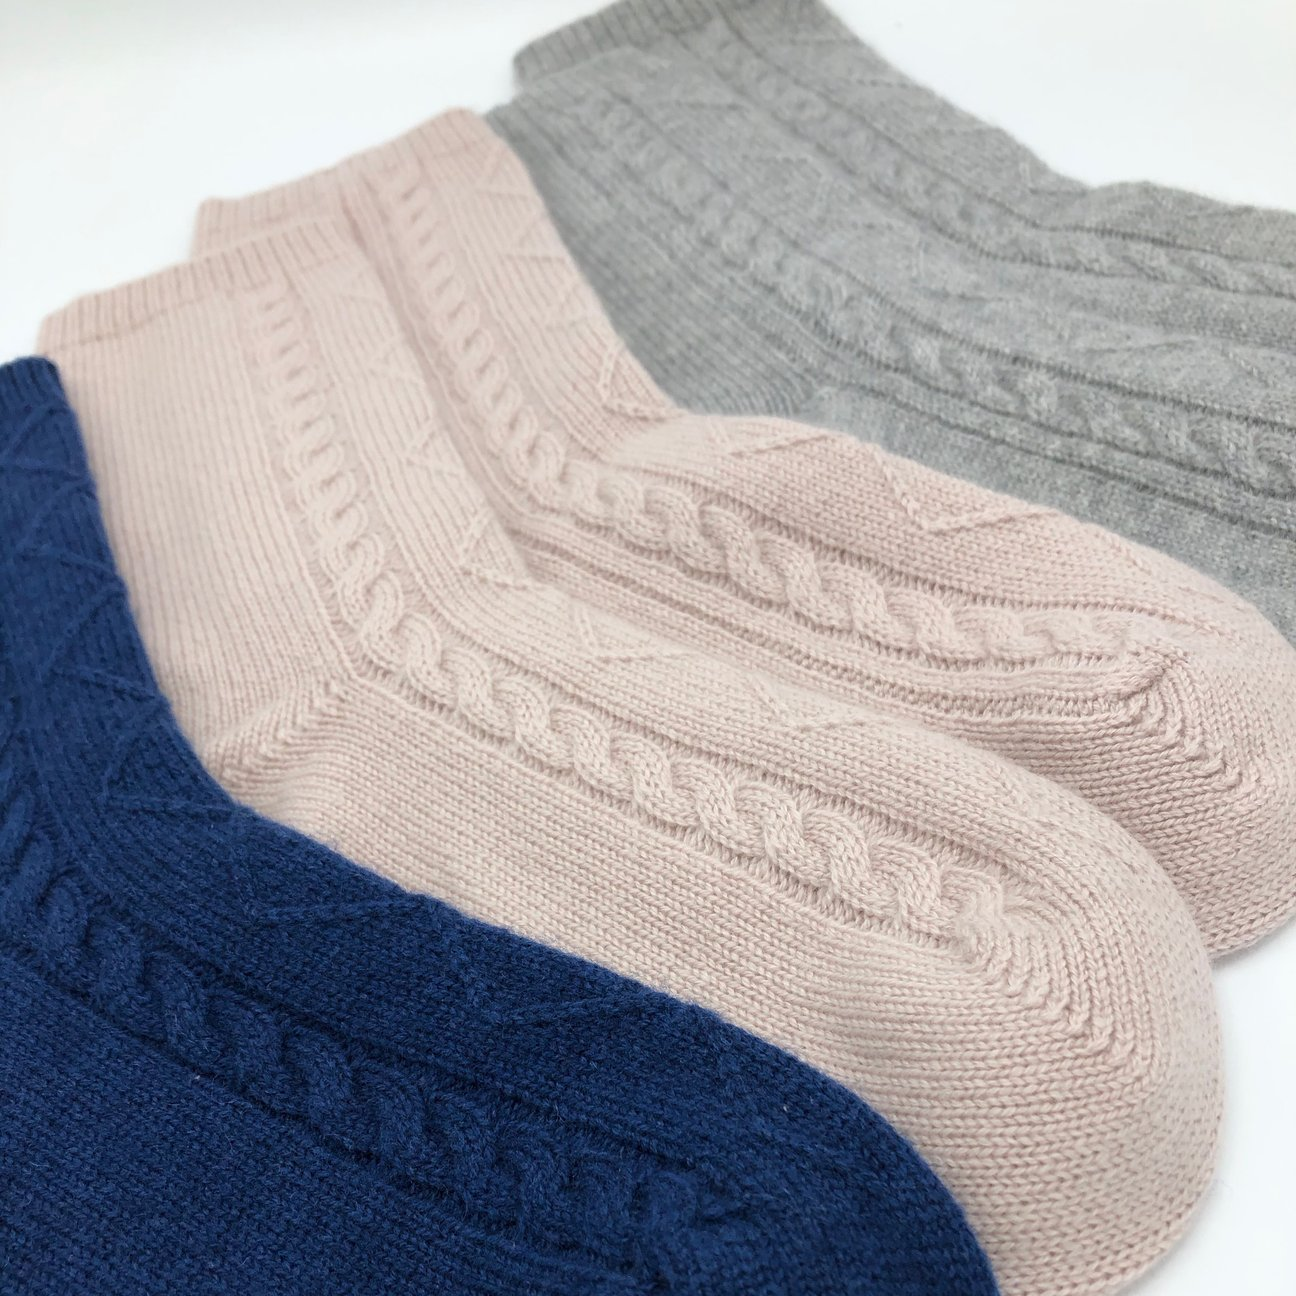 Pure Cashmere Cable Knit Socks